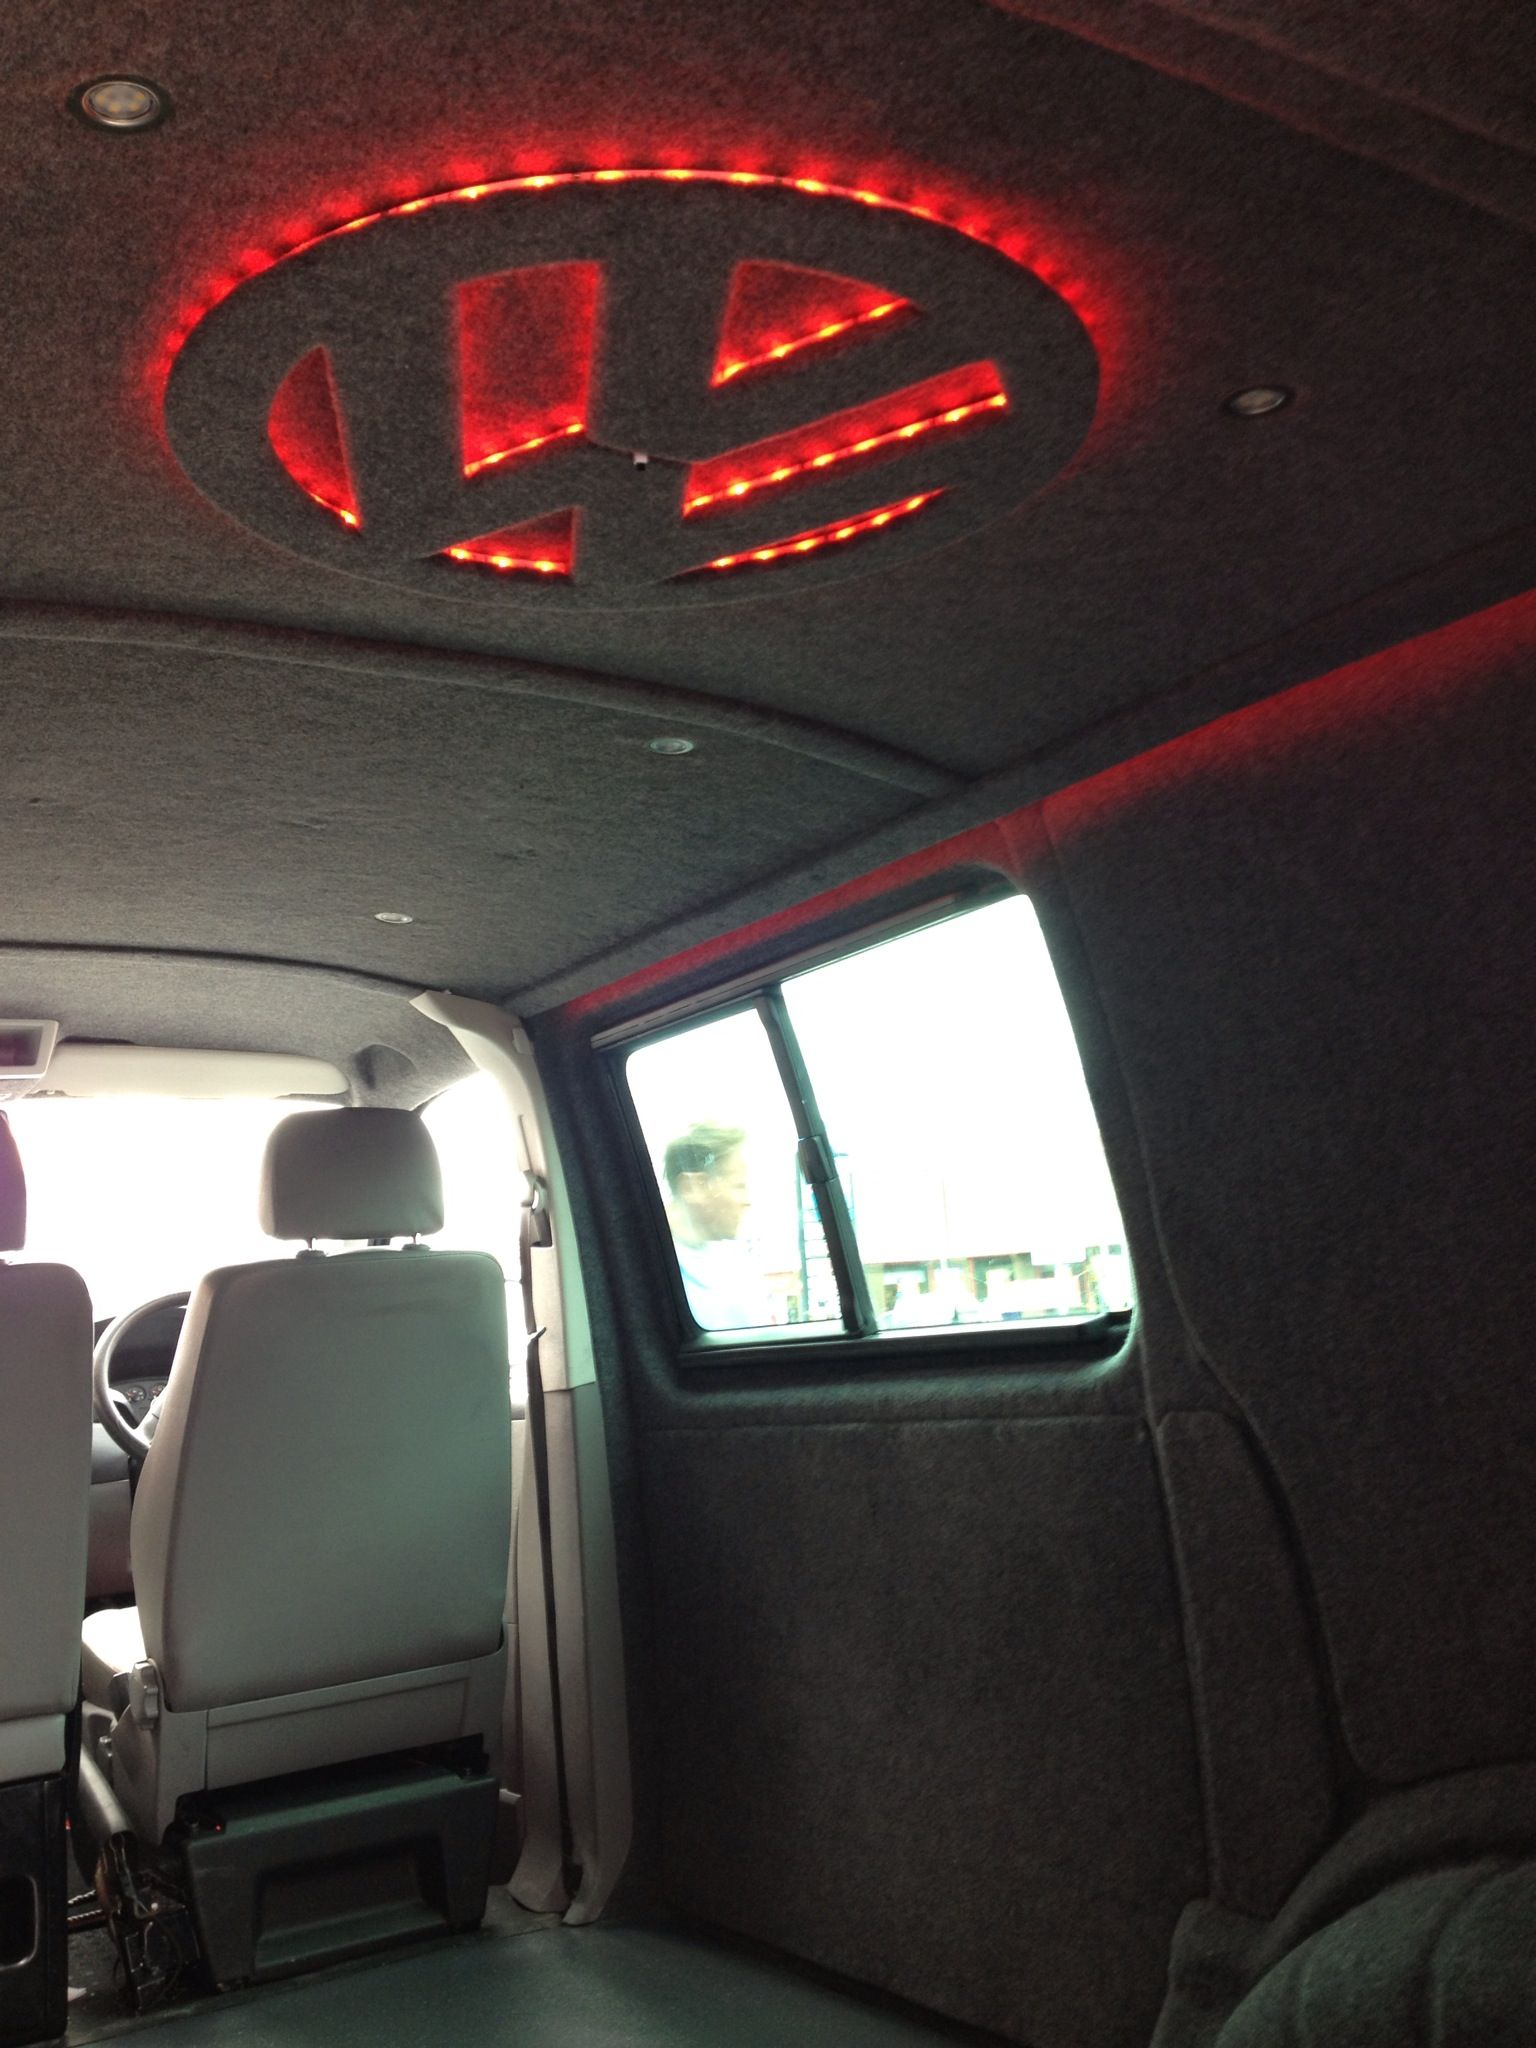 Vw Transporter T5 Fully Carpeted With Mood Lights Done